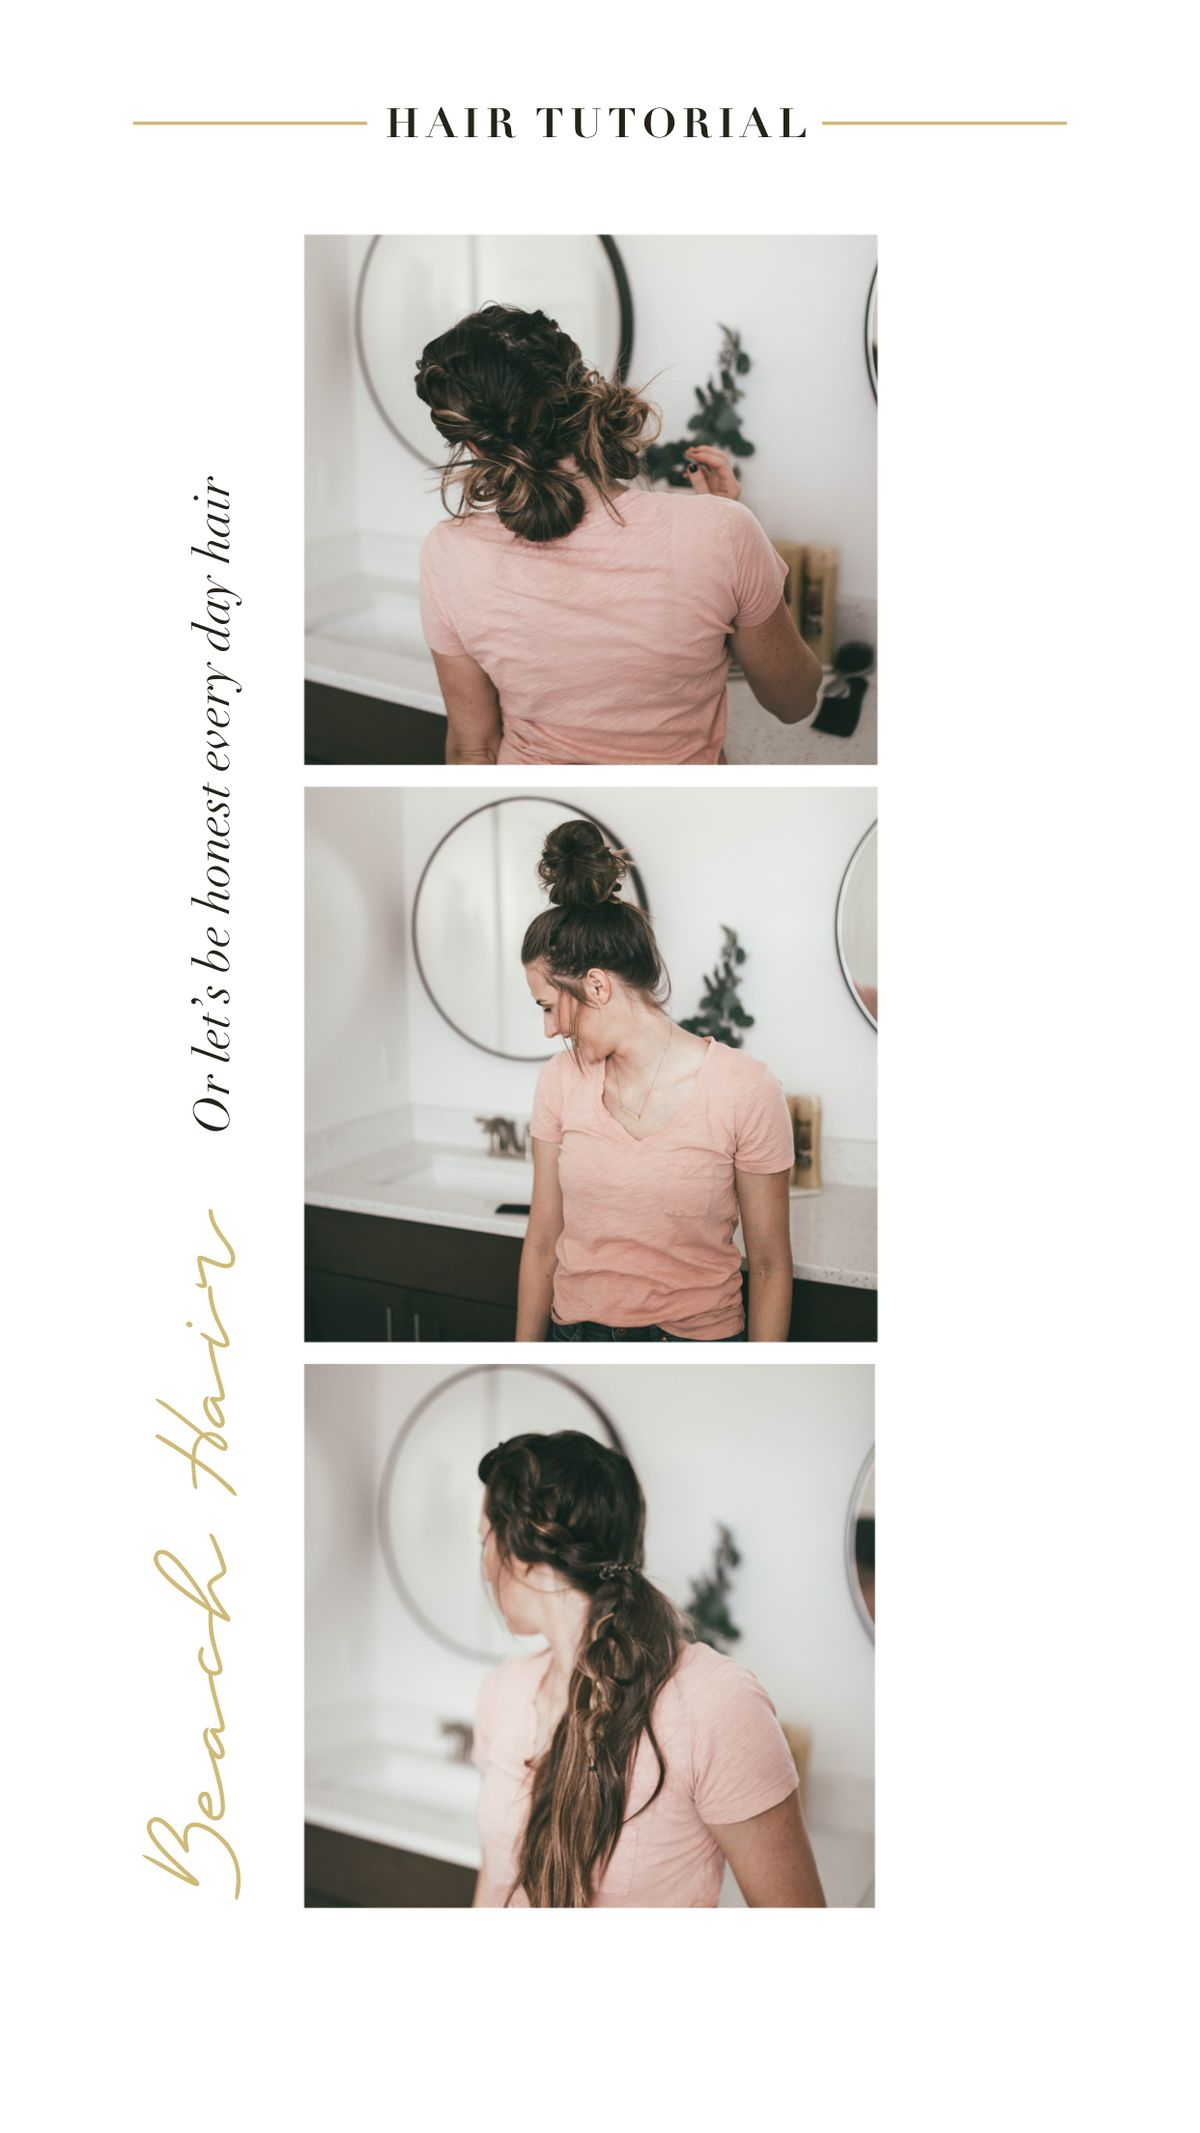 Hair at the beach or the pool can be tricky, these re 3 simple hairstyles that will keep your hair back & you looking put together! #summerhairstyles #beachair #poolhair #hairtutorial #hairstyle #updo